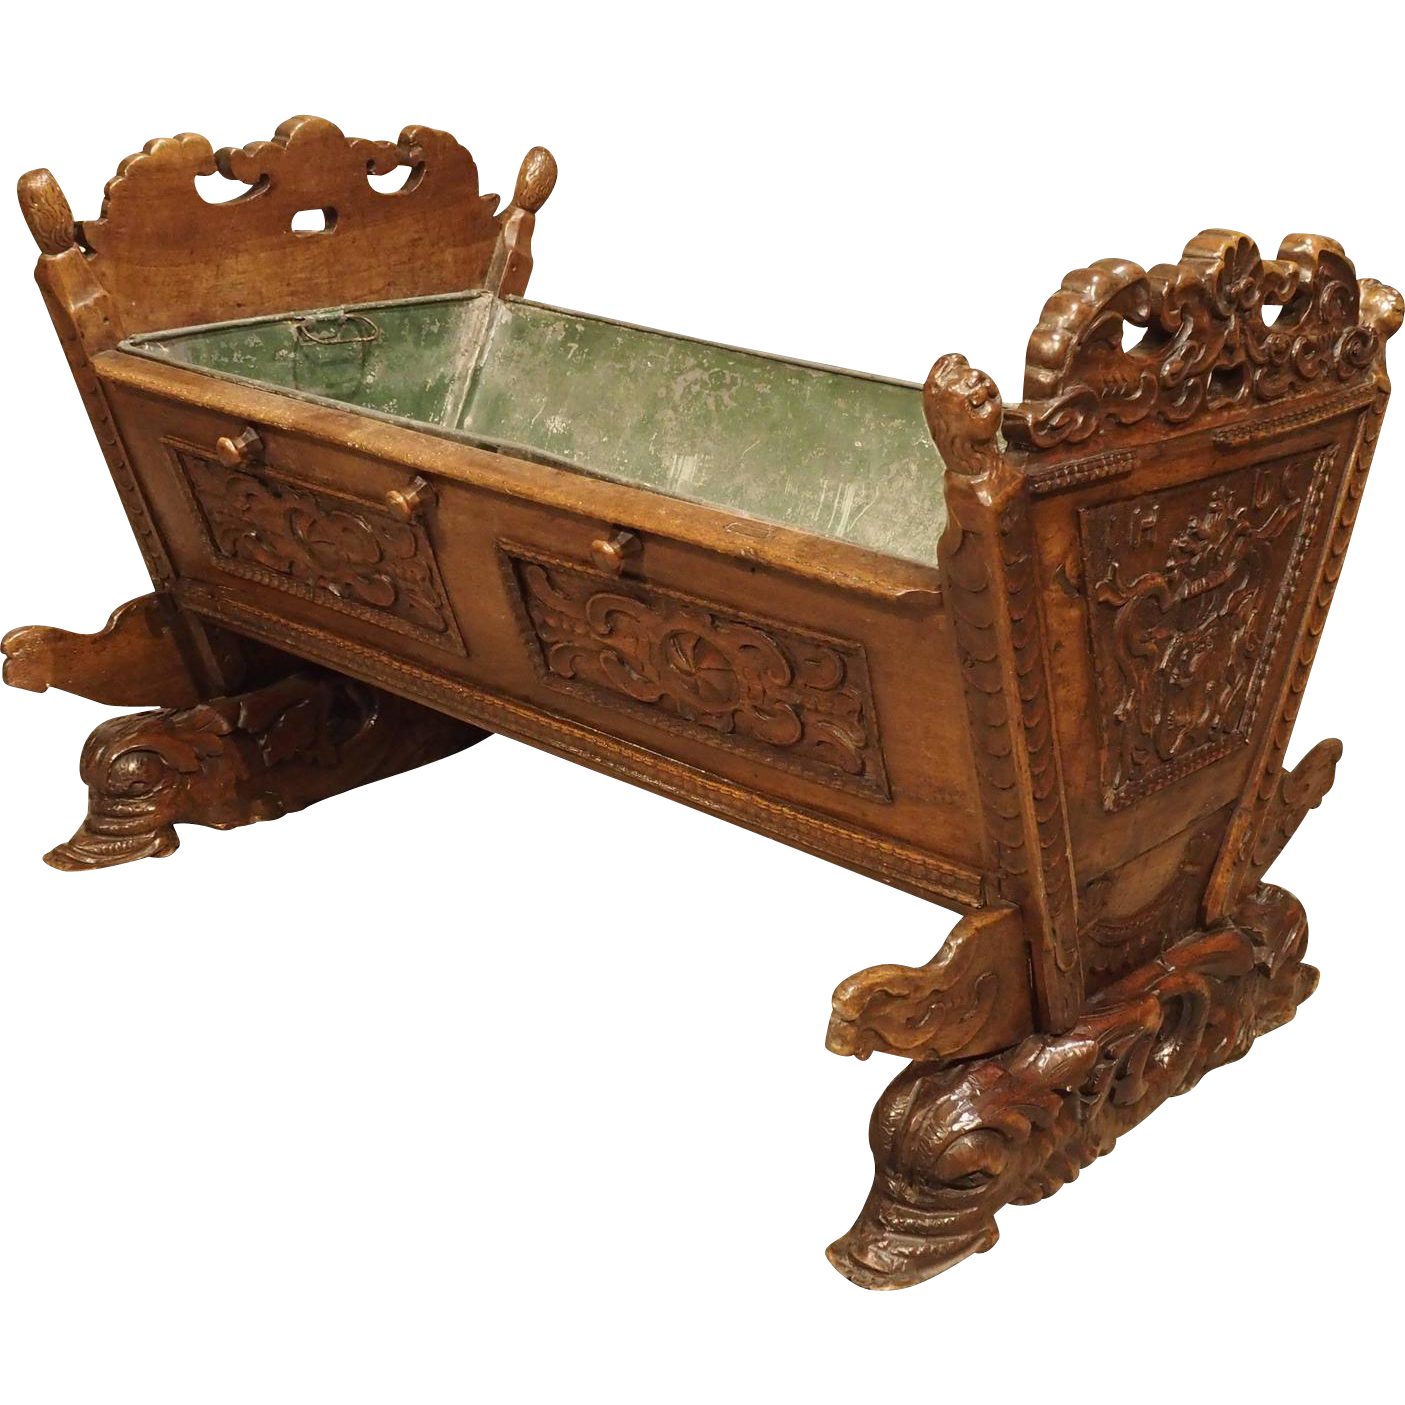 Beautiful 18th Century French Walnut Wood Crib with Family Coat of Arms- Bourgogne